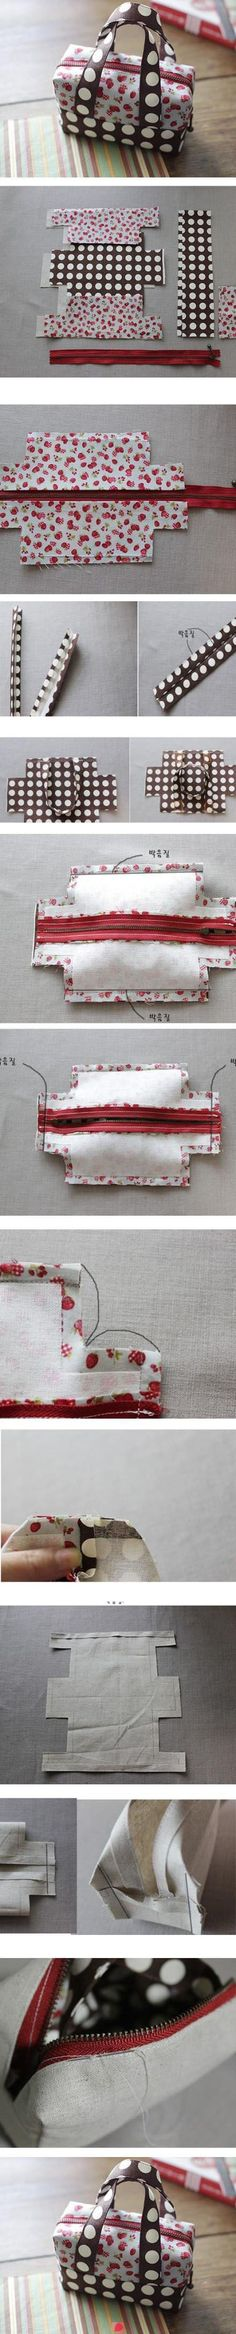 Cute bag!!! I would really be able to do this, but the sewing is not my best quality!: